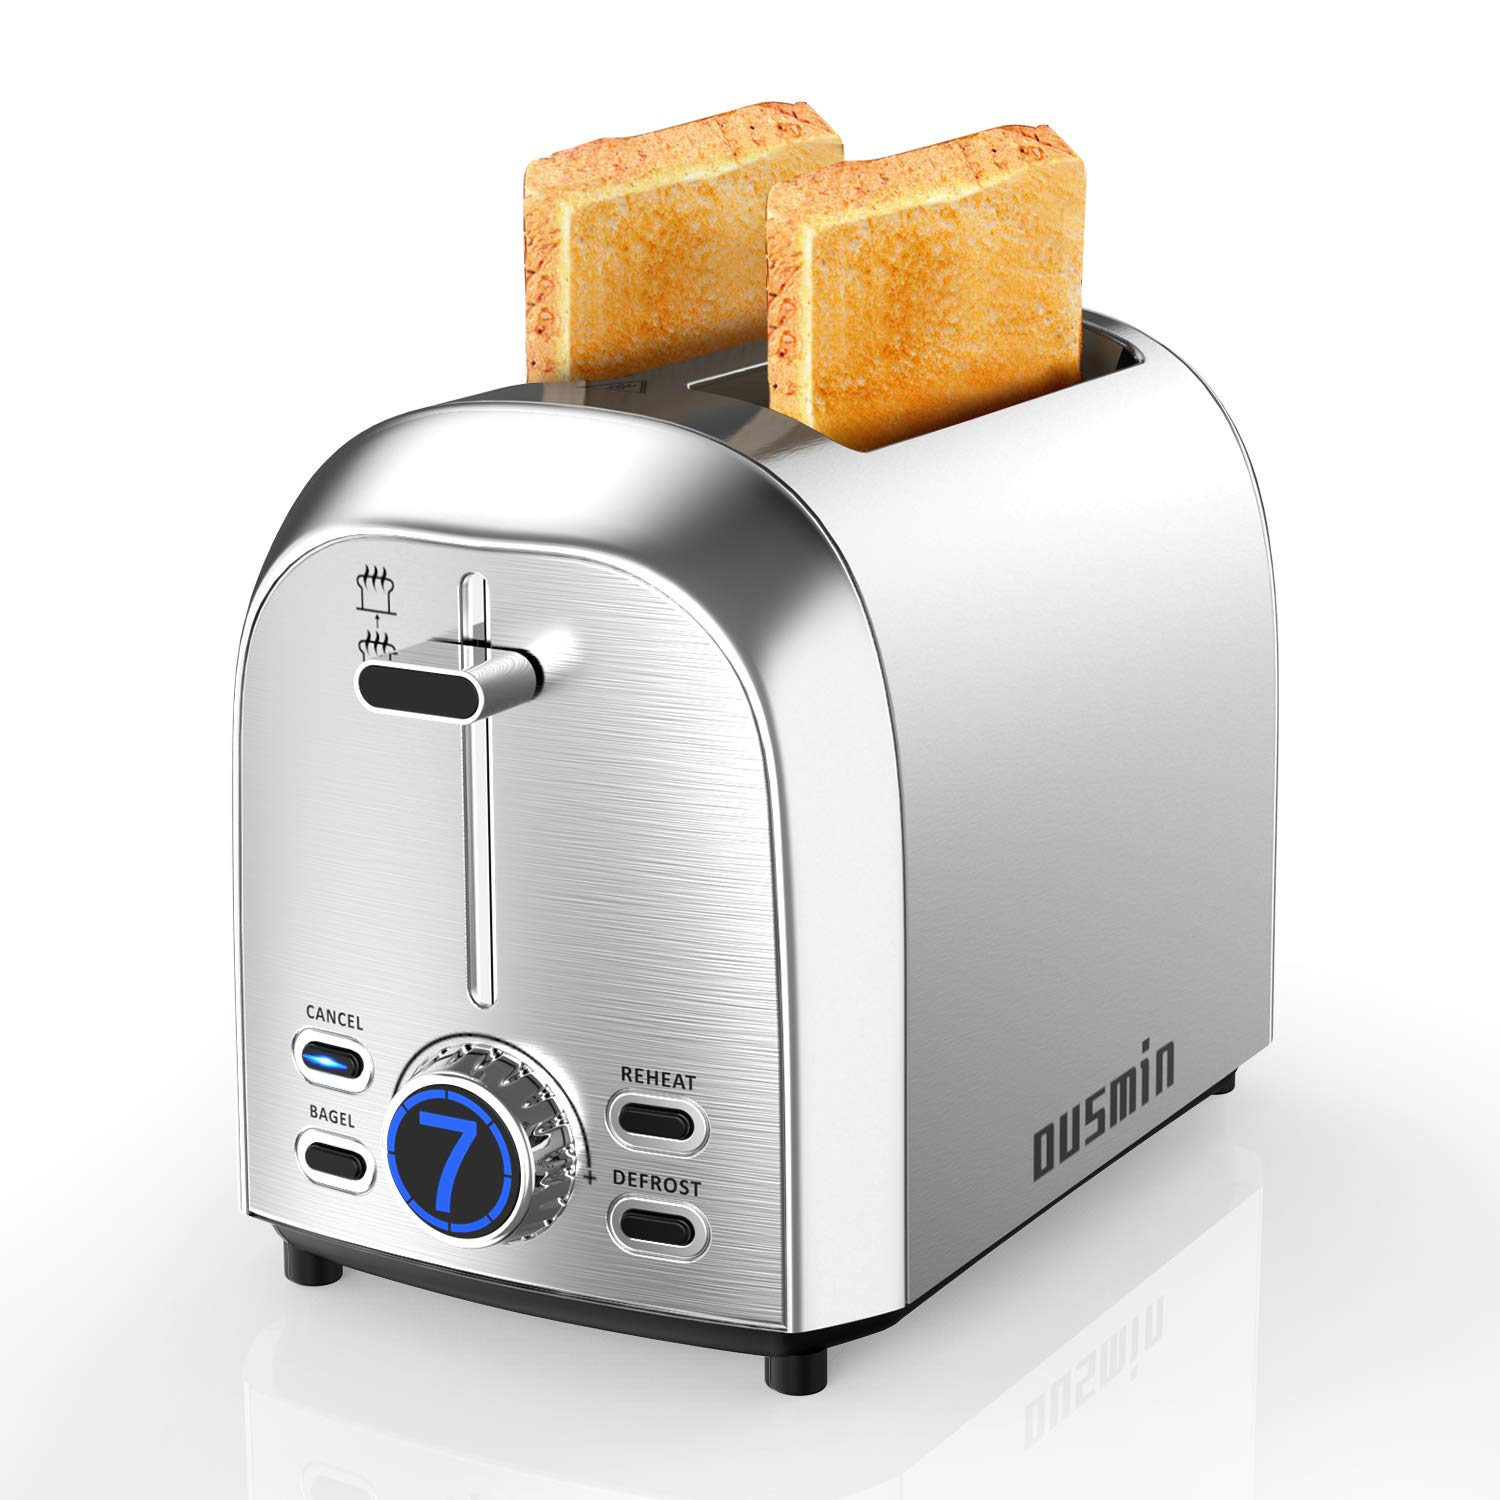 2 Slice Toaster LED Timer Display, OUSMIN 7 Shade Settings Stainless Steel Toaster with 1.5inch Wide Slot and BAGEL, DEFROST, CANCEL and REHEAT 4 Function, Removable Crumb Tray Compact Toaster by OUSMIN